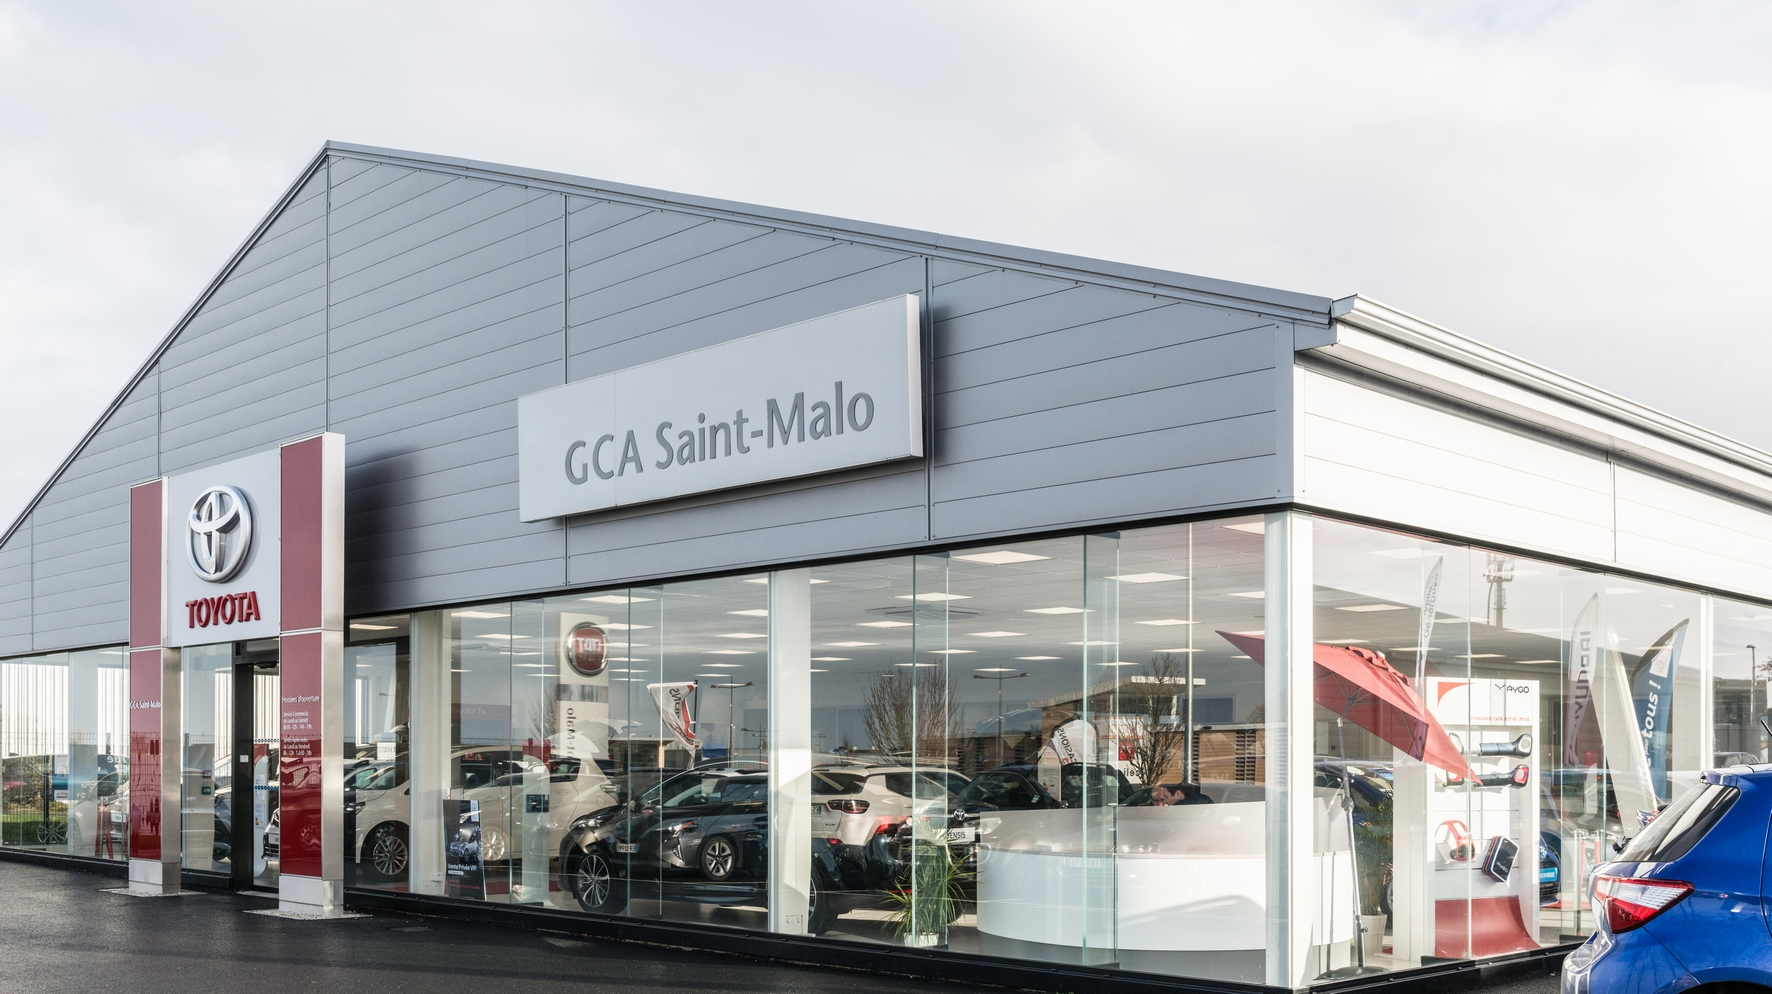 gca st malo concessionnaire toyota saint malo auto occasion saint malo. Black Bedroom Furniture Sets. Home Design Ideas